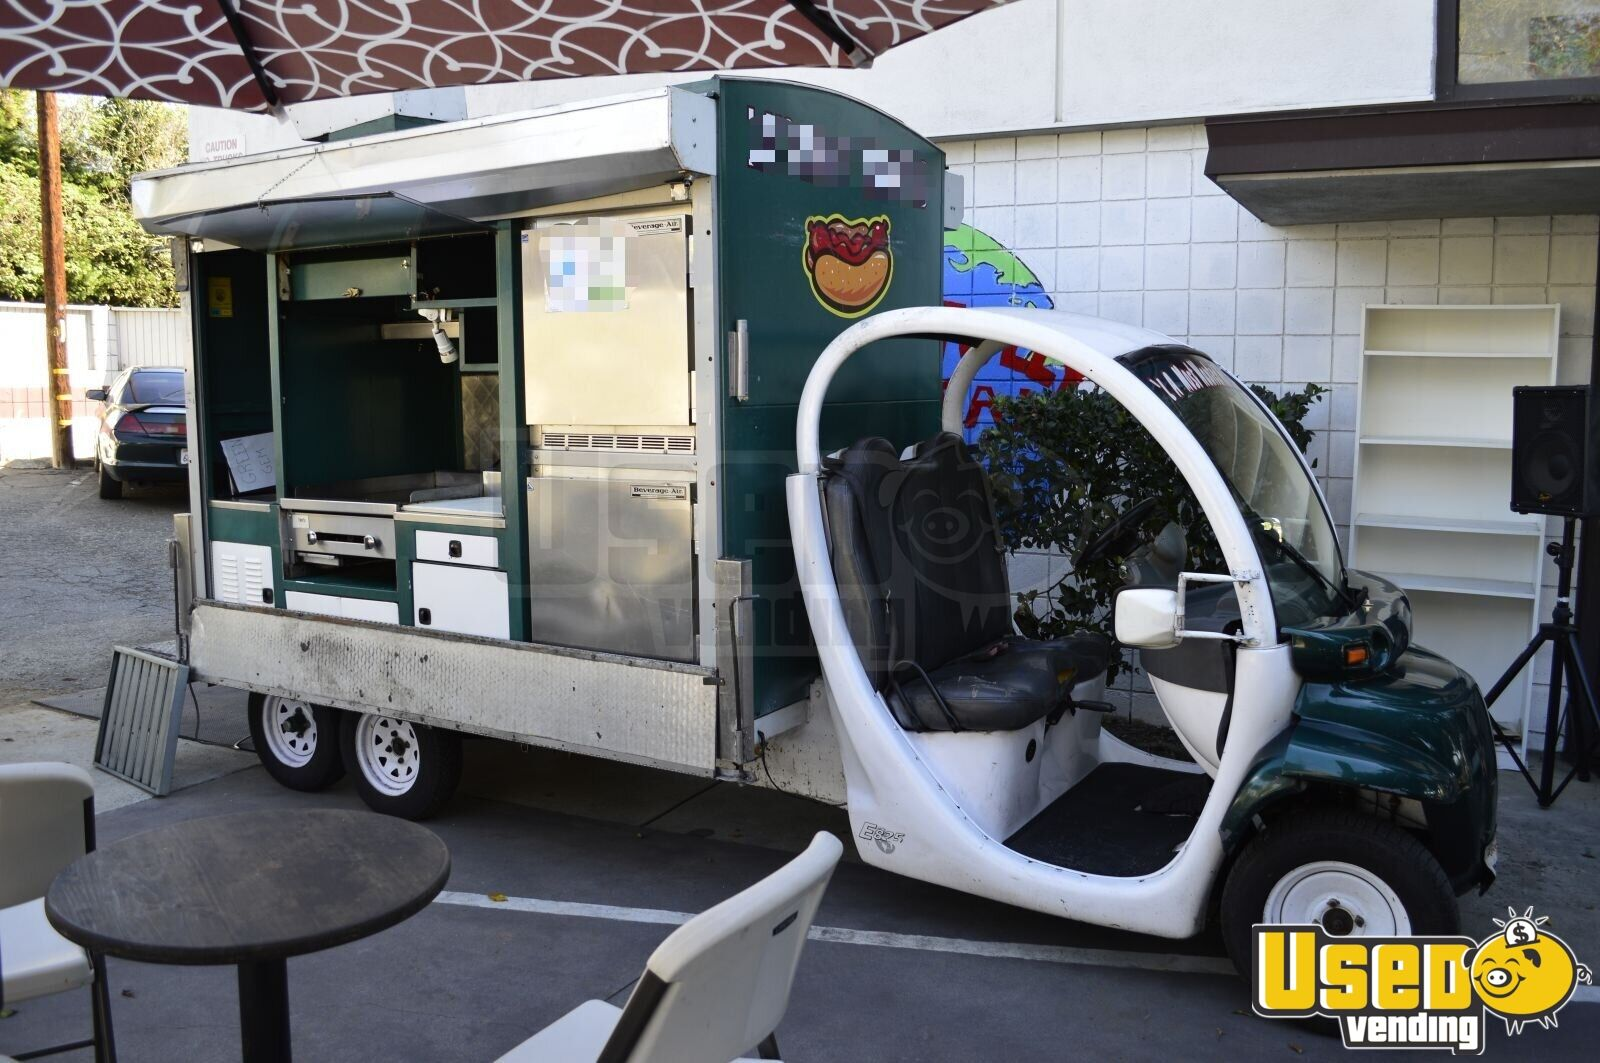 Small Food Truck For Sale >> Lunch / Canteen Truck | Used Food Truck for Sale in California